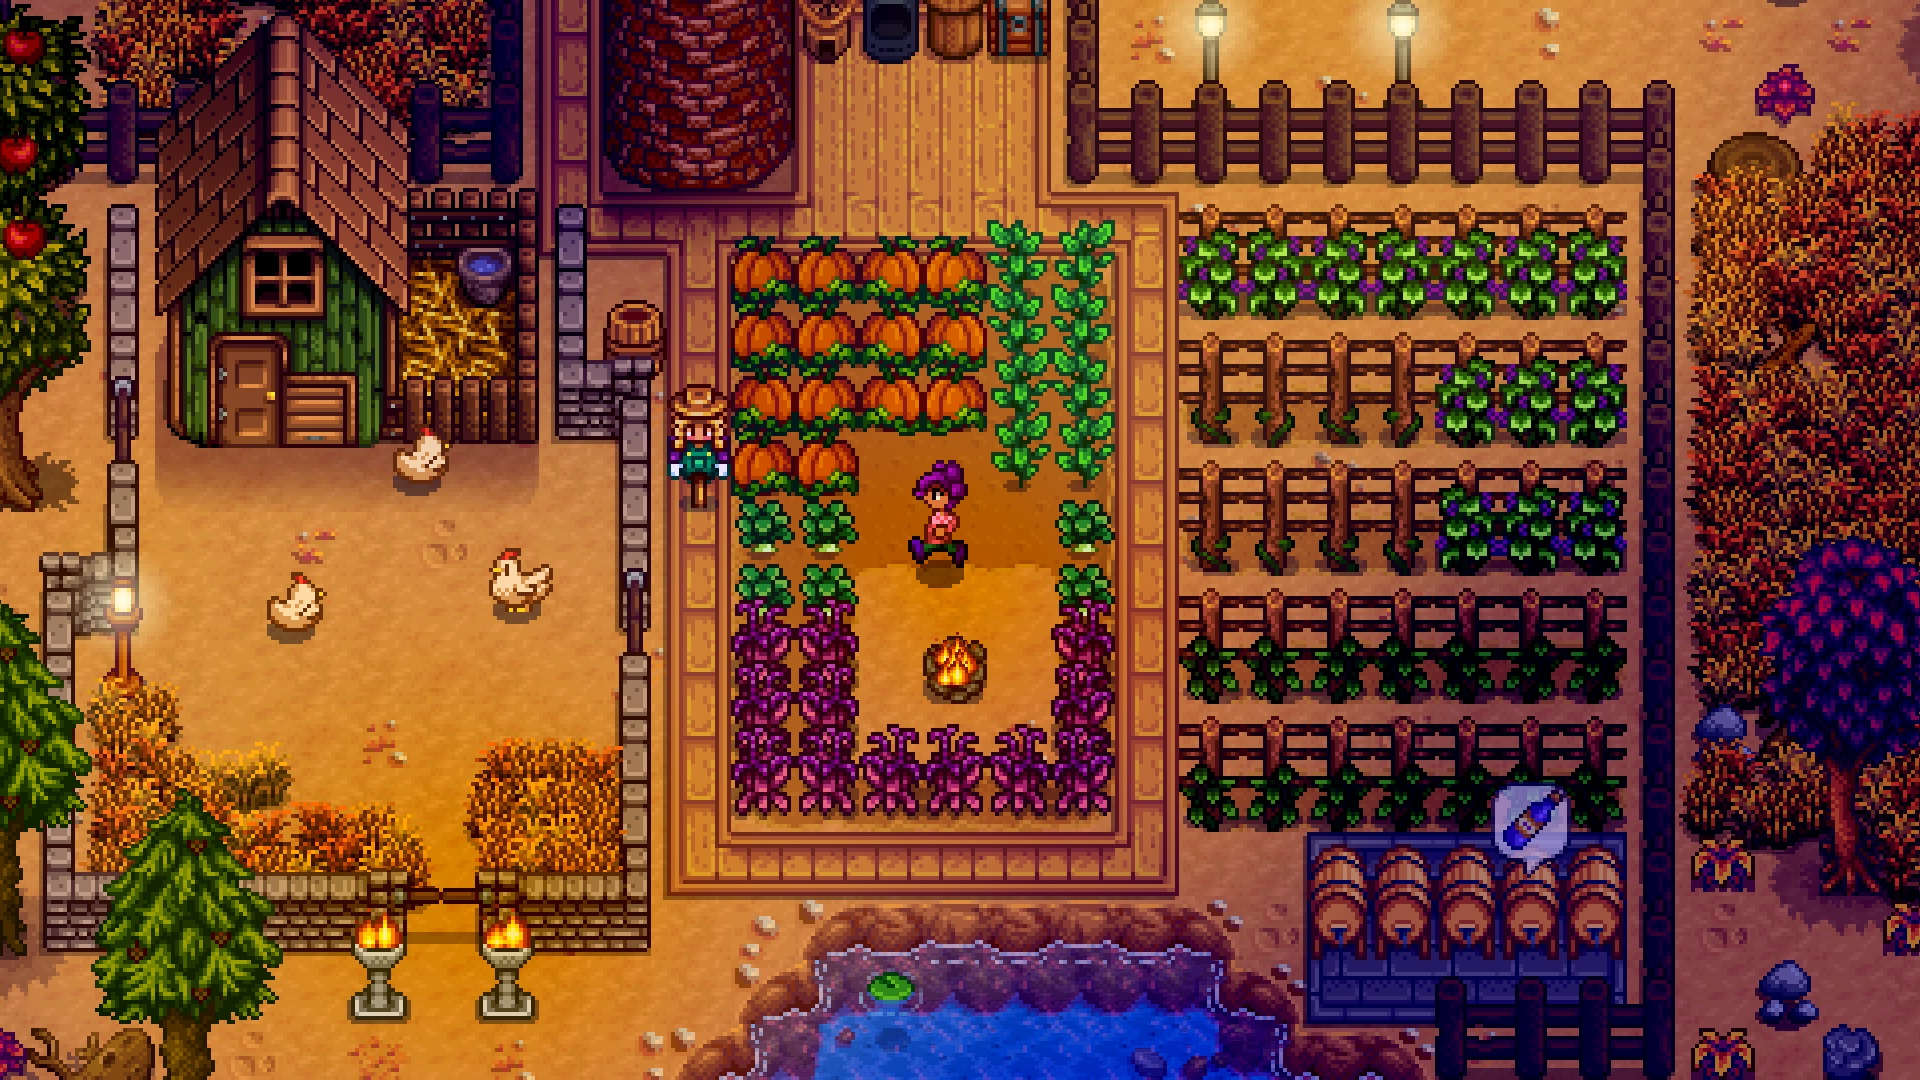 Stardew Valley's multiplayer update will feature local and